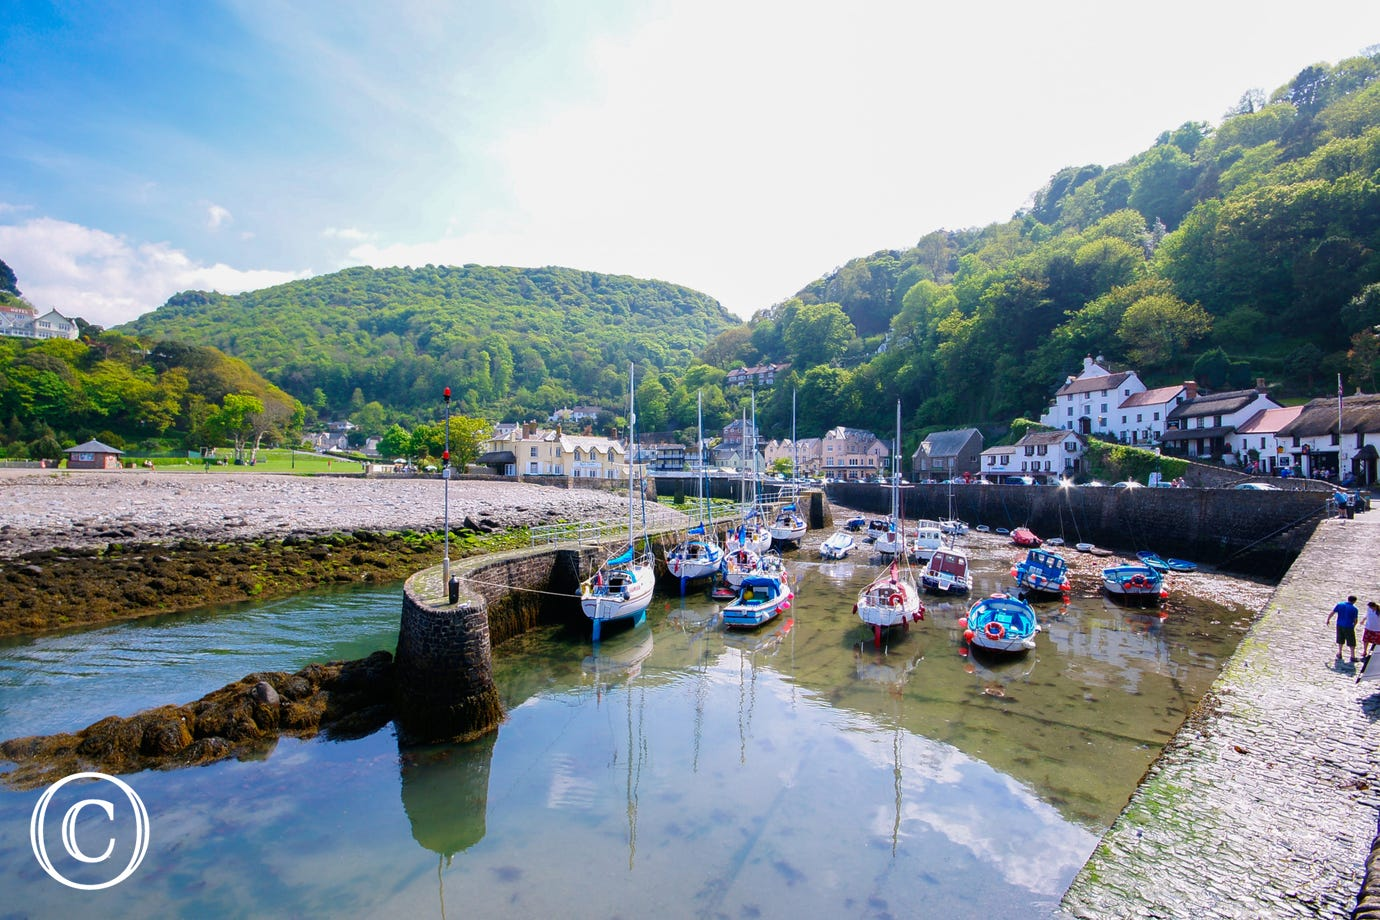 A few minutes stroll will take you to the beautiful harbour of Lynmouth